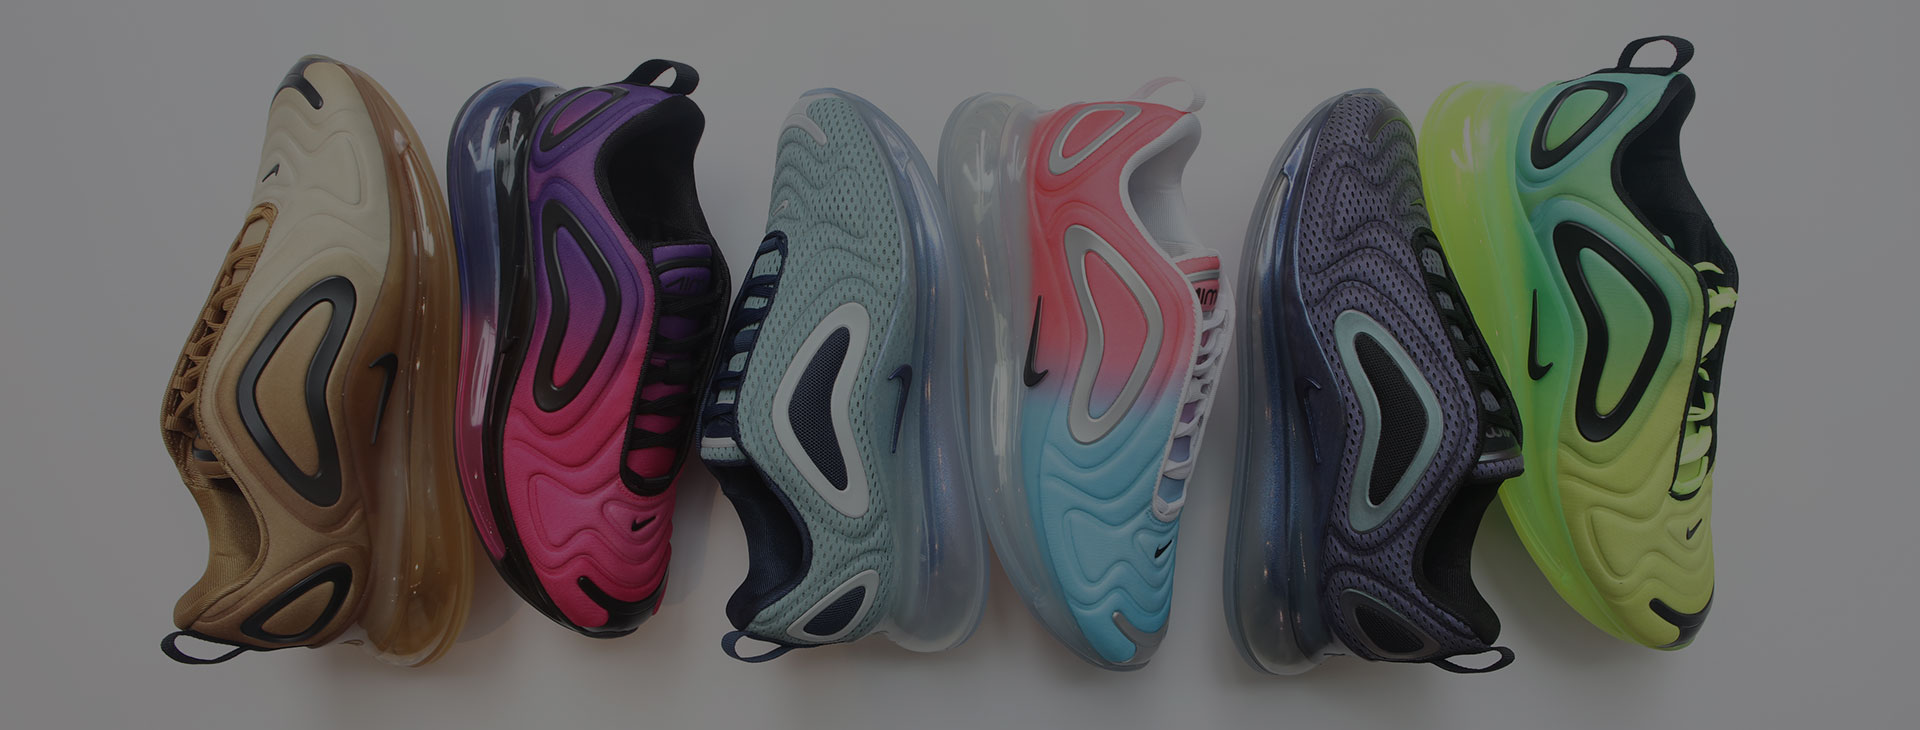 09e72f3894 Here's When You Can Buy The Highly Anticipated Nike Air Max 720